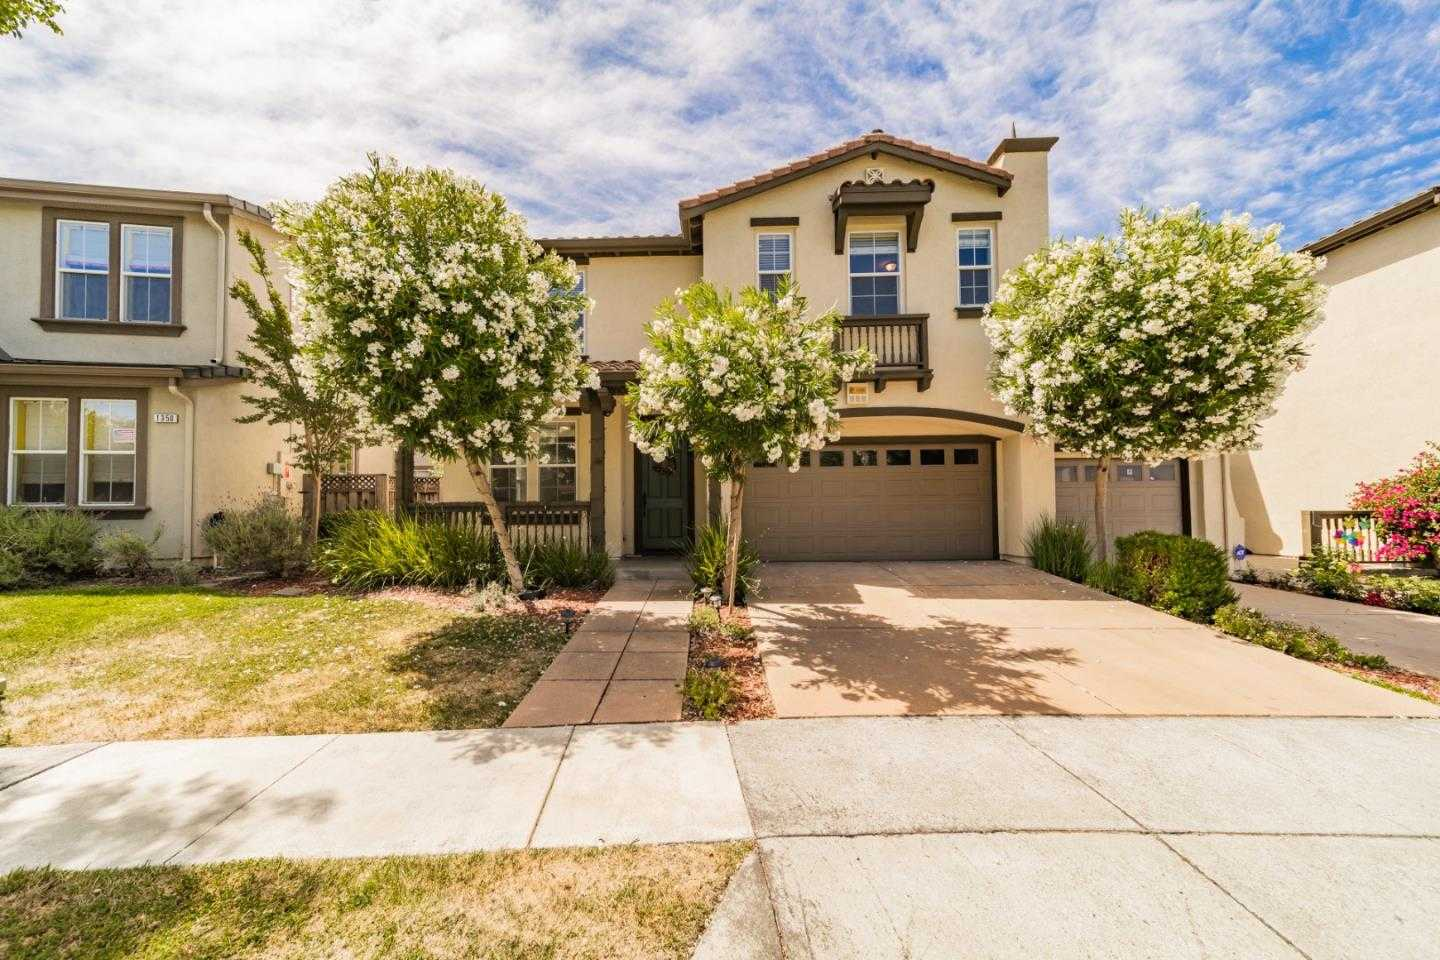 $1,470,000 - 4Br/4Ba -  for Sale in San Jose